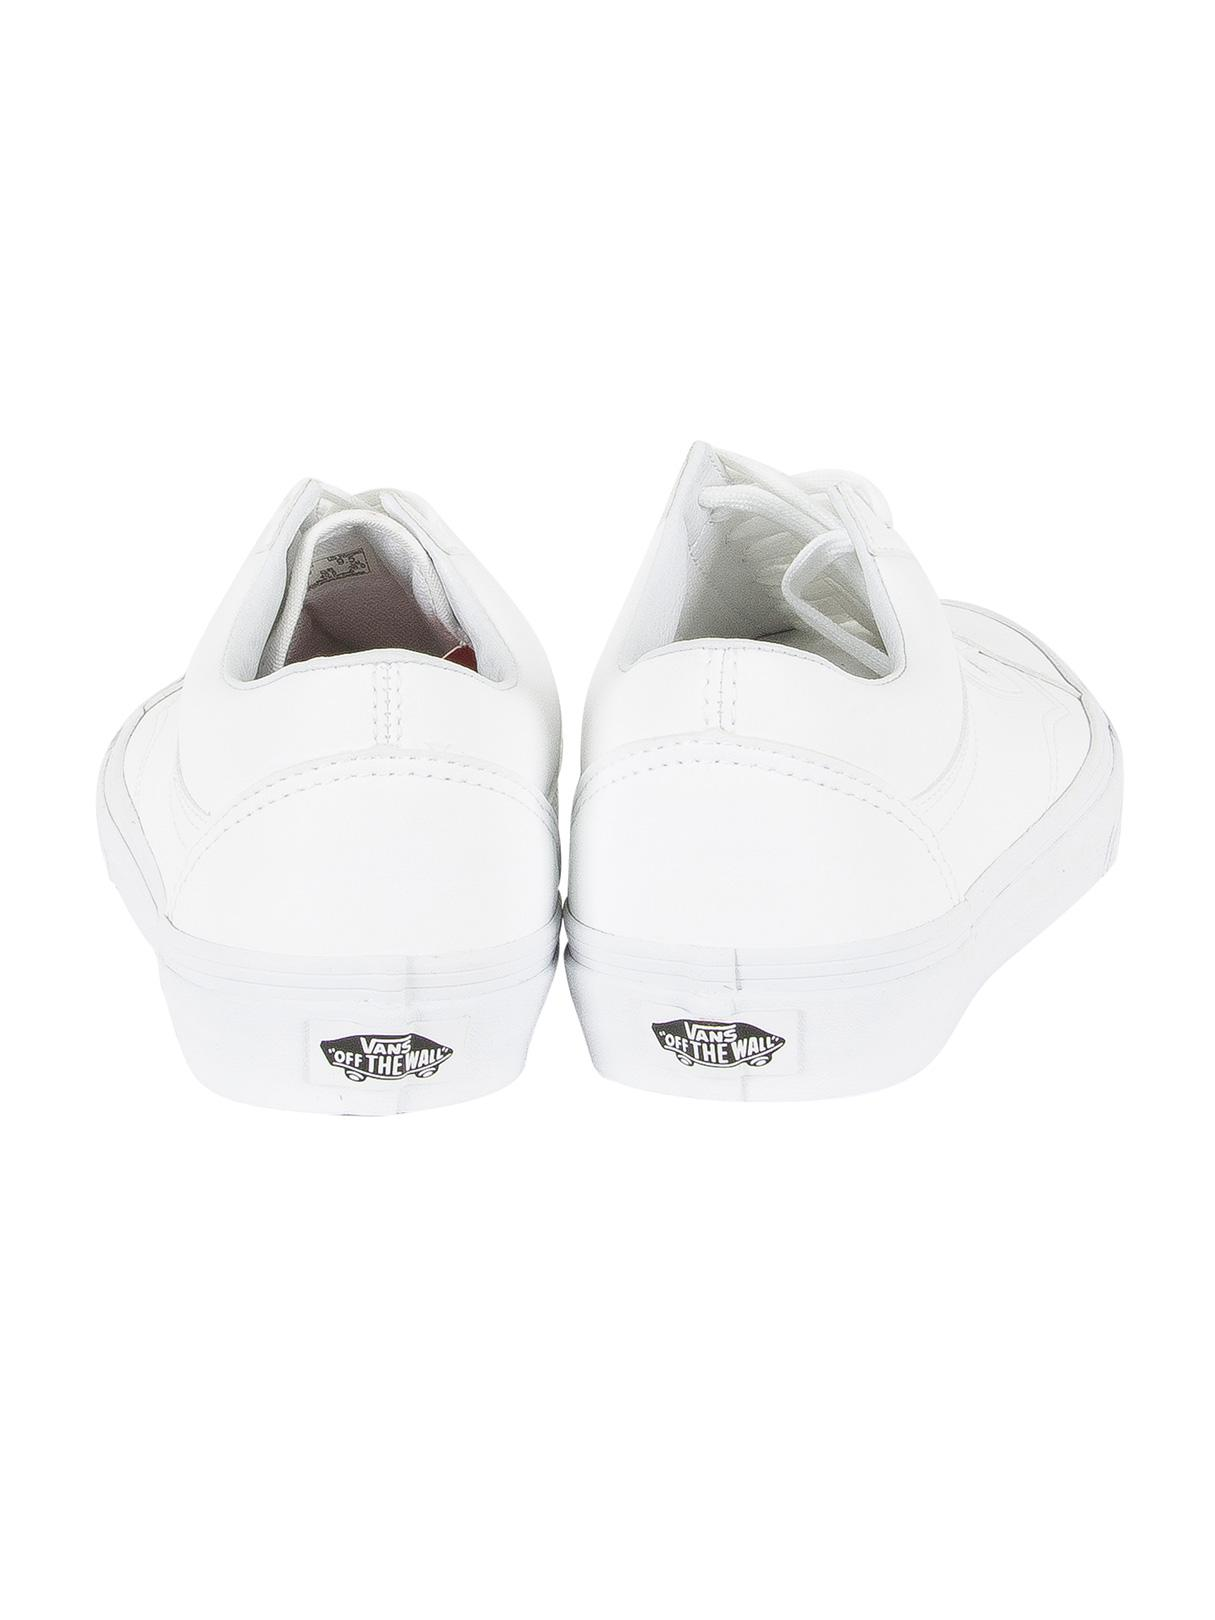 Vans Rubber True White Old Skool Classic Tumble Trainers for Men